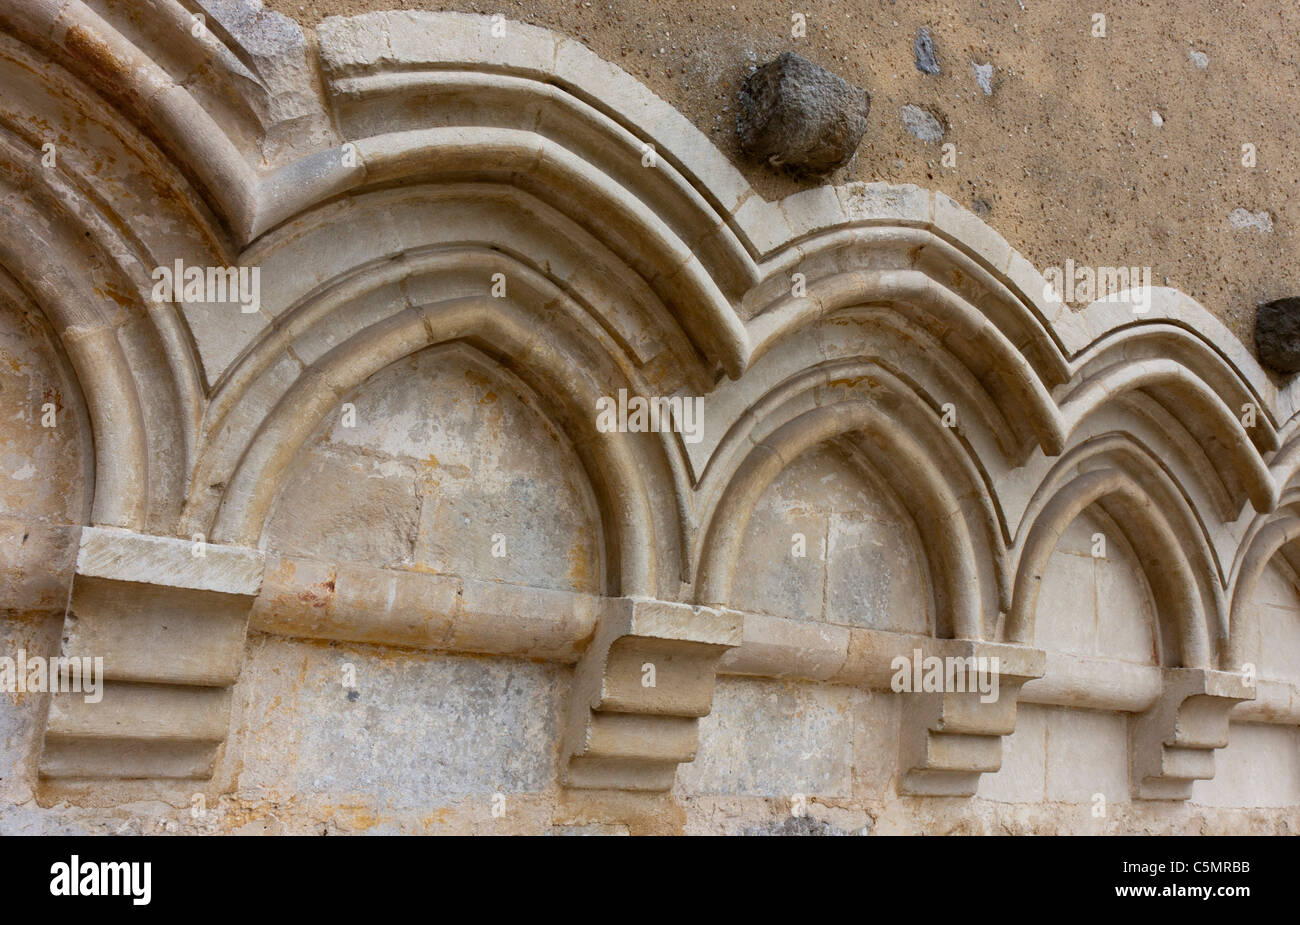 Cascade Of Traditional Gothic Arches With Simple Archivolts On A Religious Building Wall